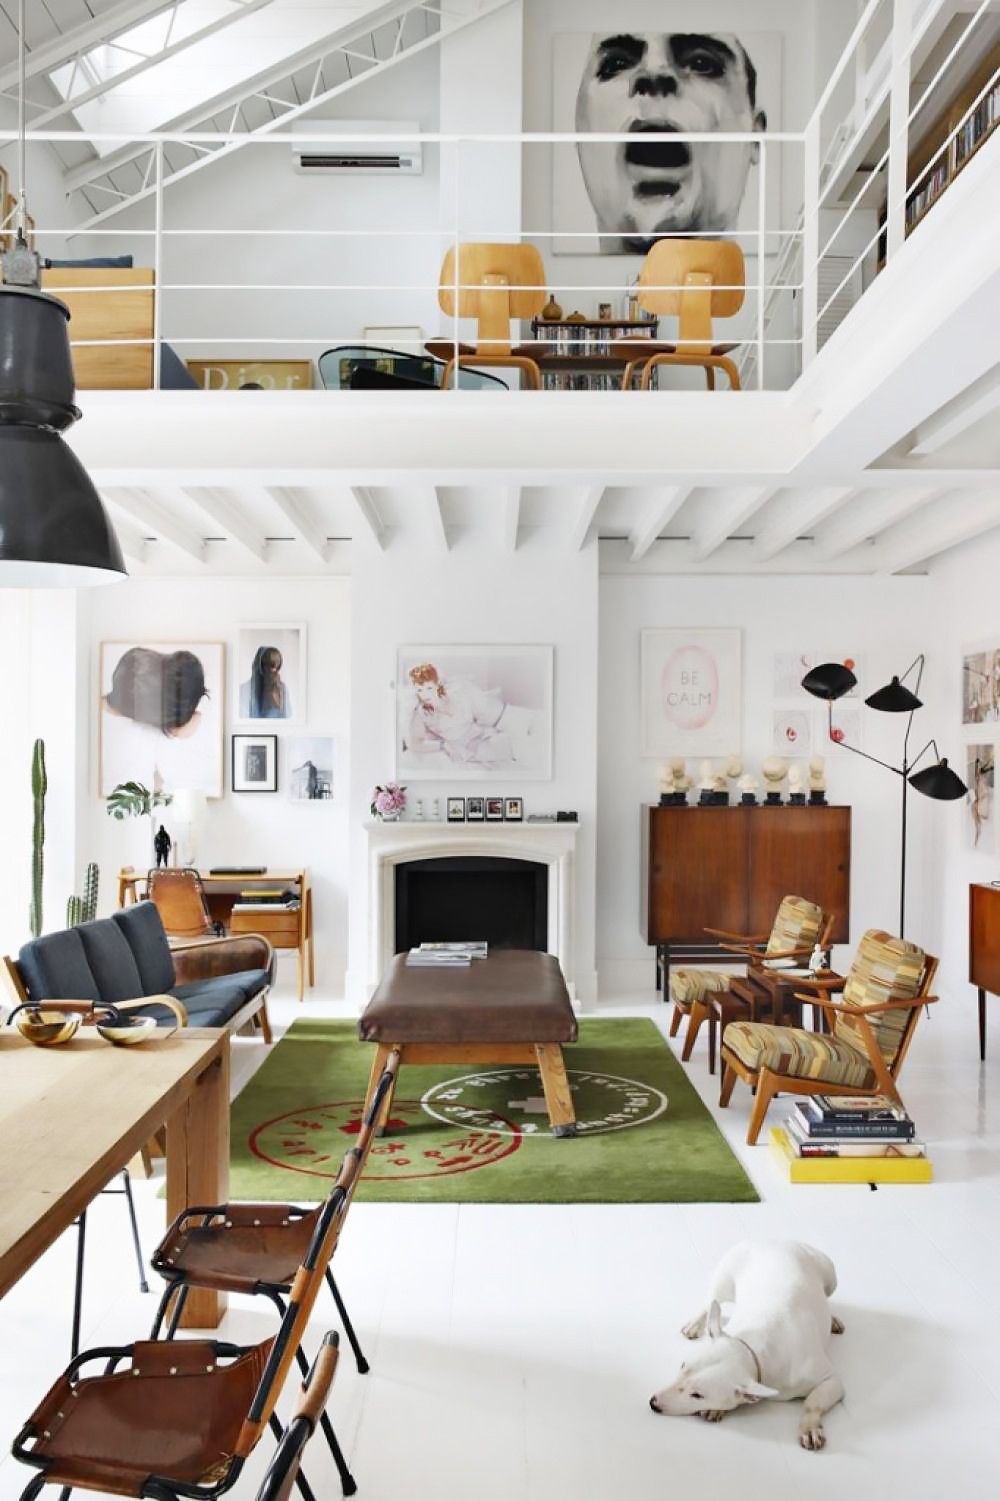 How to decorate like wes anderson via mydomaine loft interior design loft design